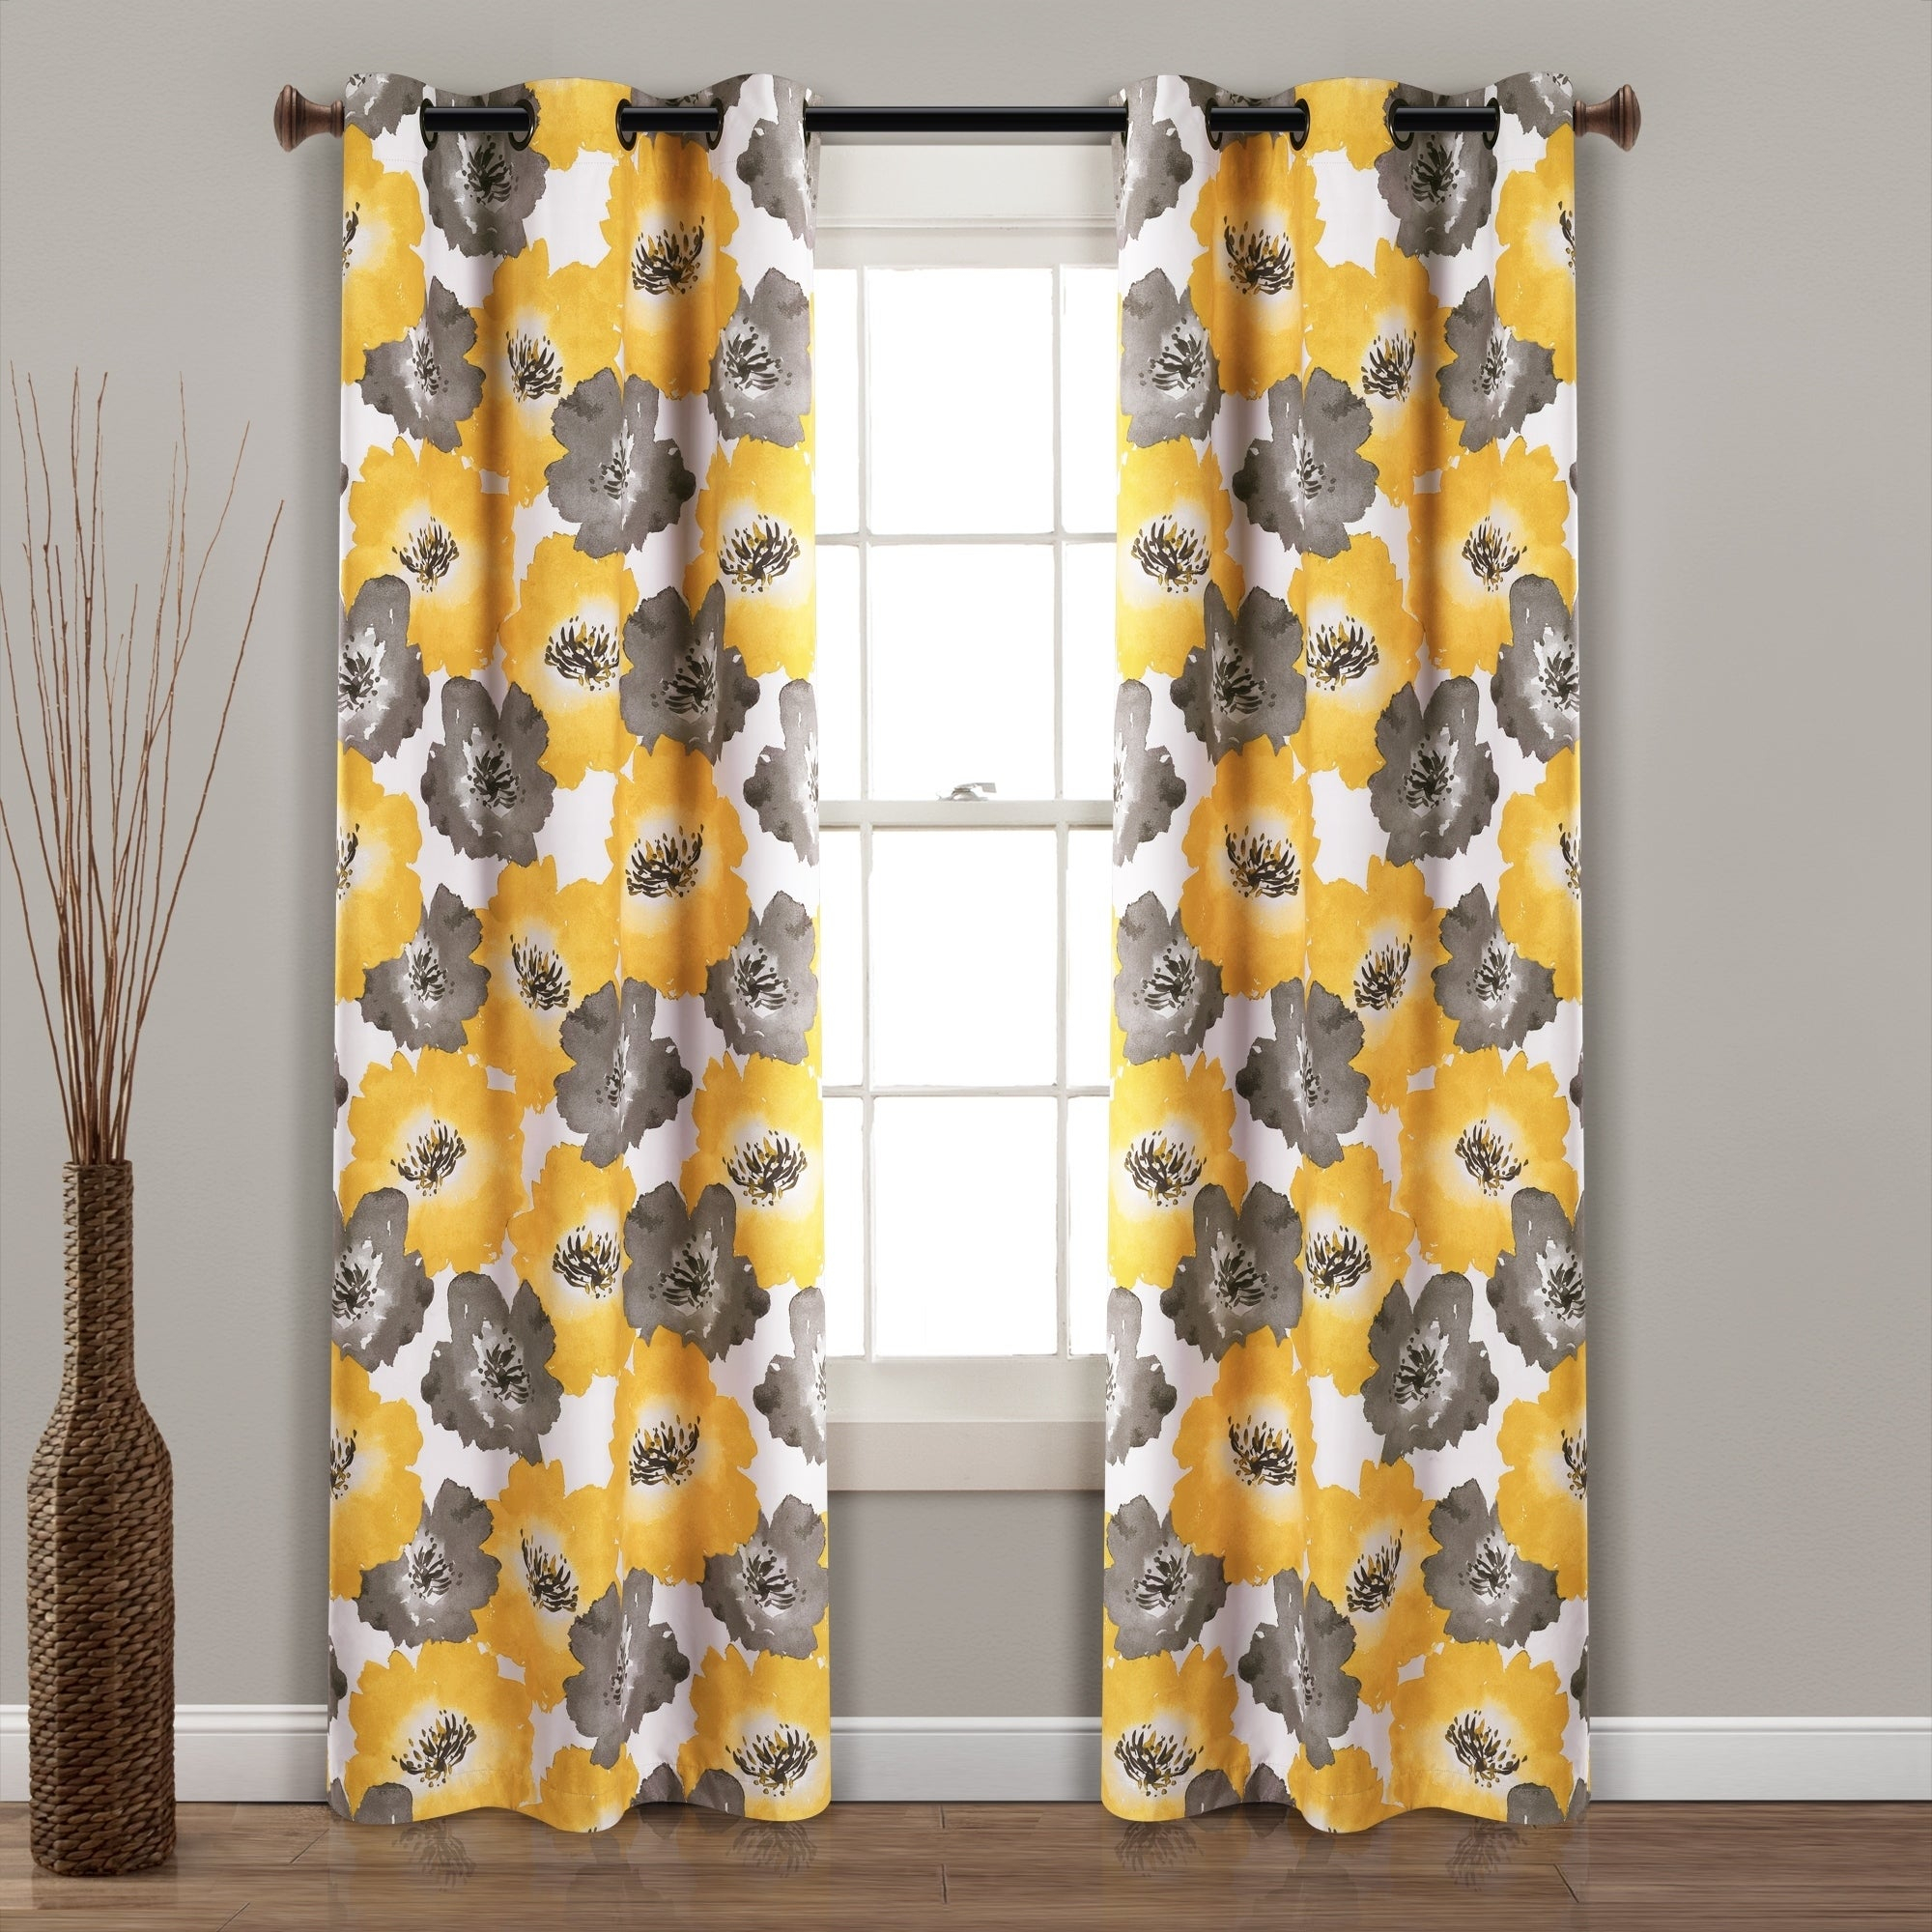 Lush Decor Julie Floral Insulated Grommet Blackout Window Curtain Panel Pair Intended For Insulated Grommet Blackout Curtain Panel Pairs (View 16 of 20)